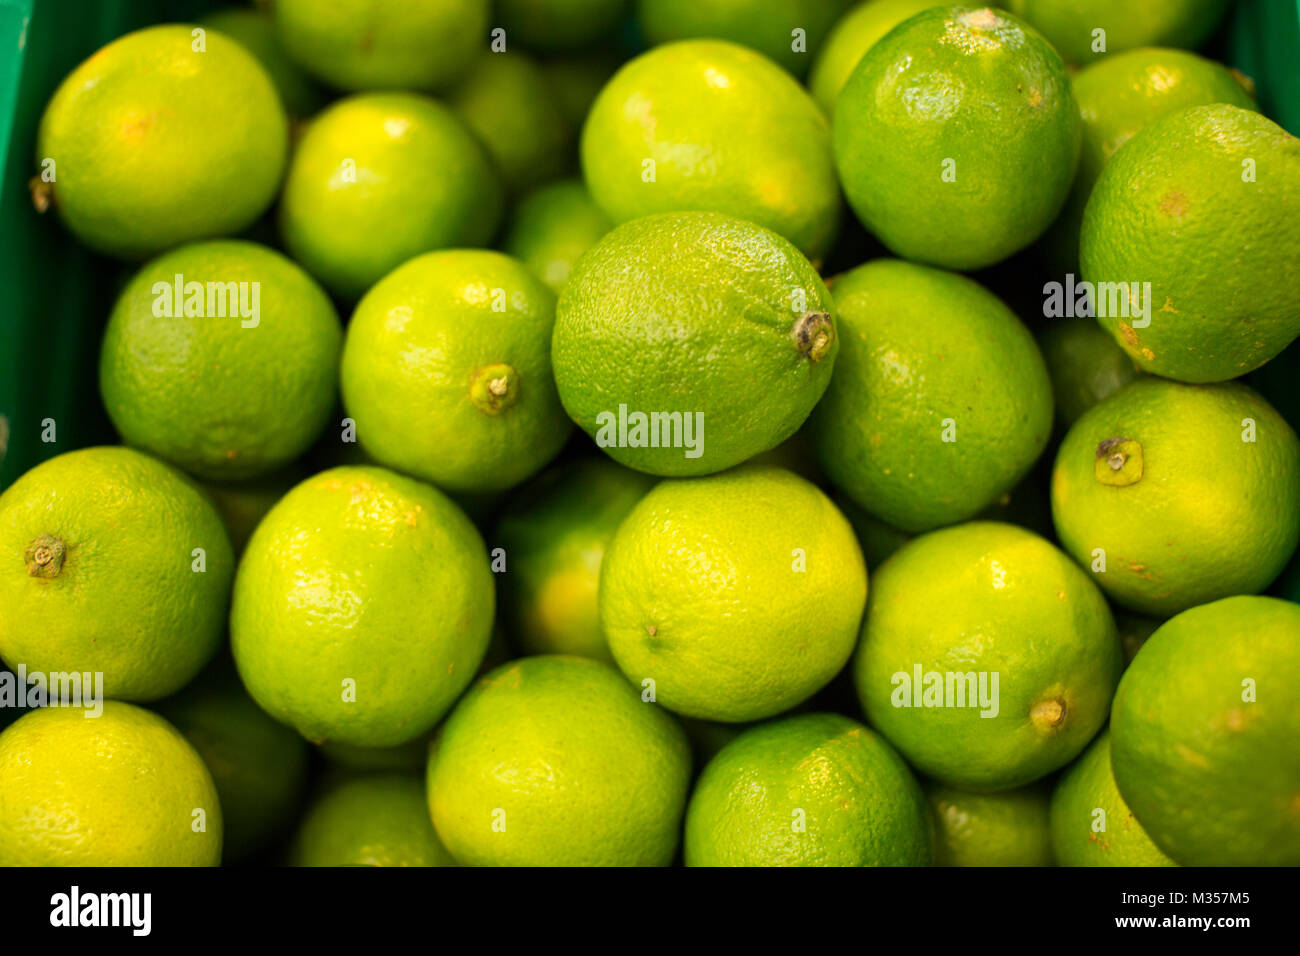 limes for sale in a supermarket - Stock Image